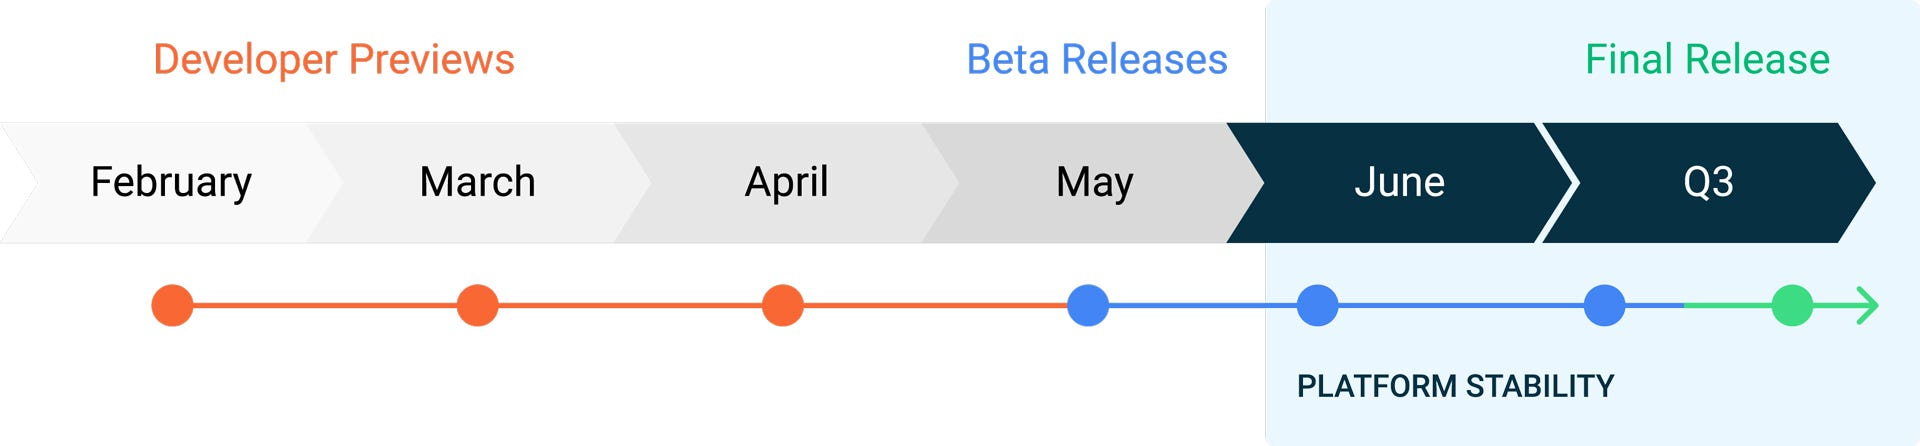 Android 11 Beta Timeline